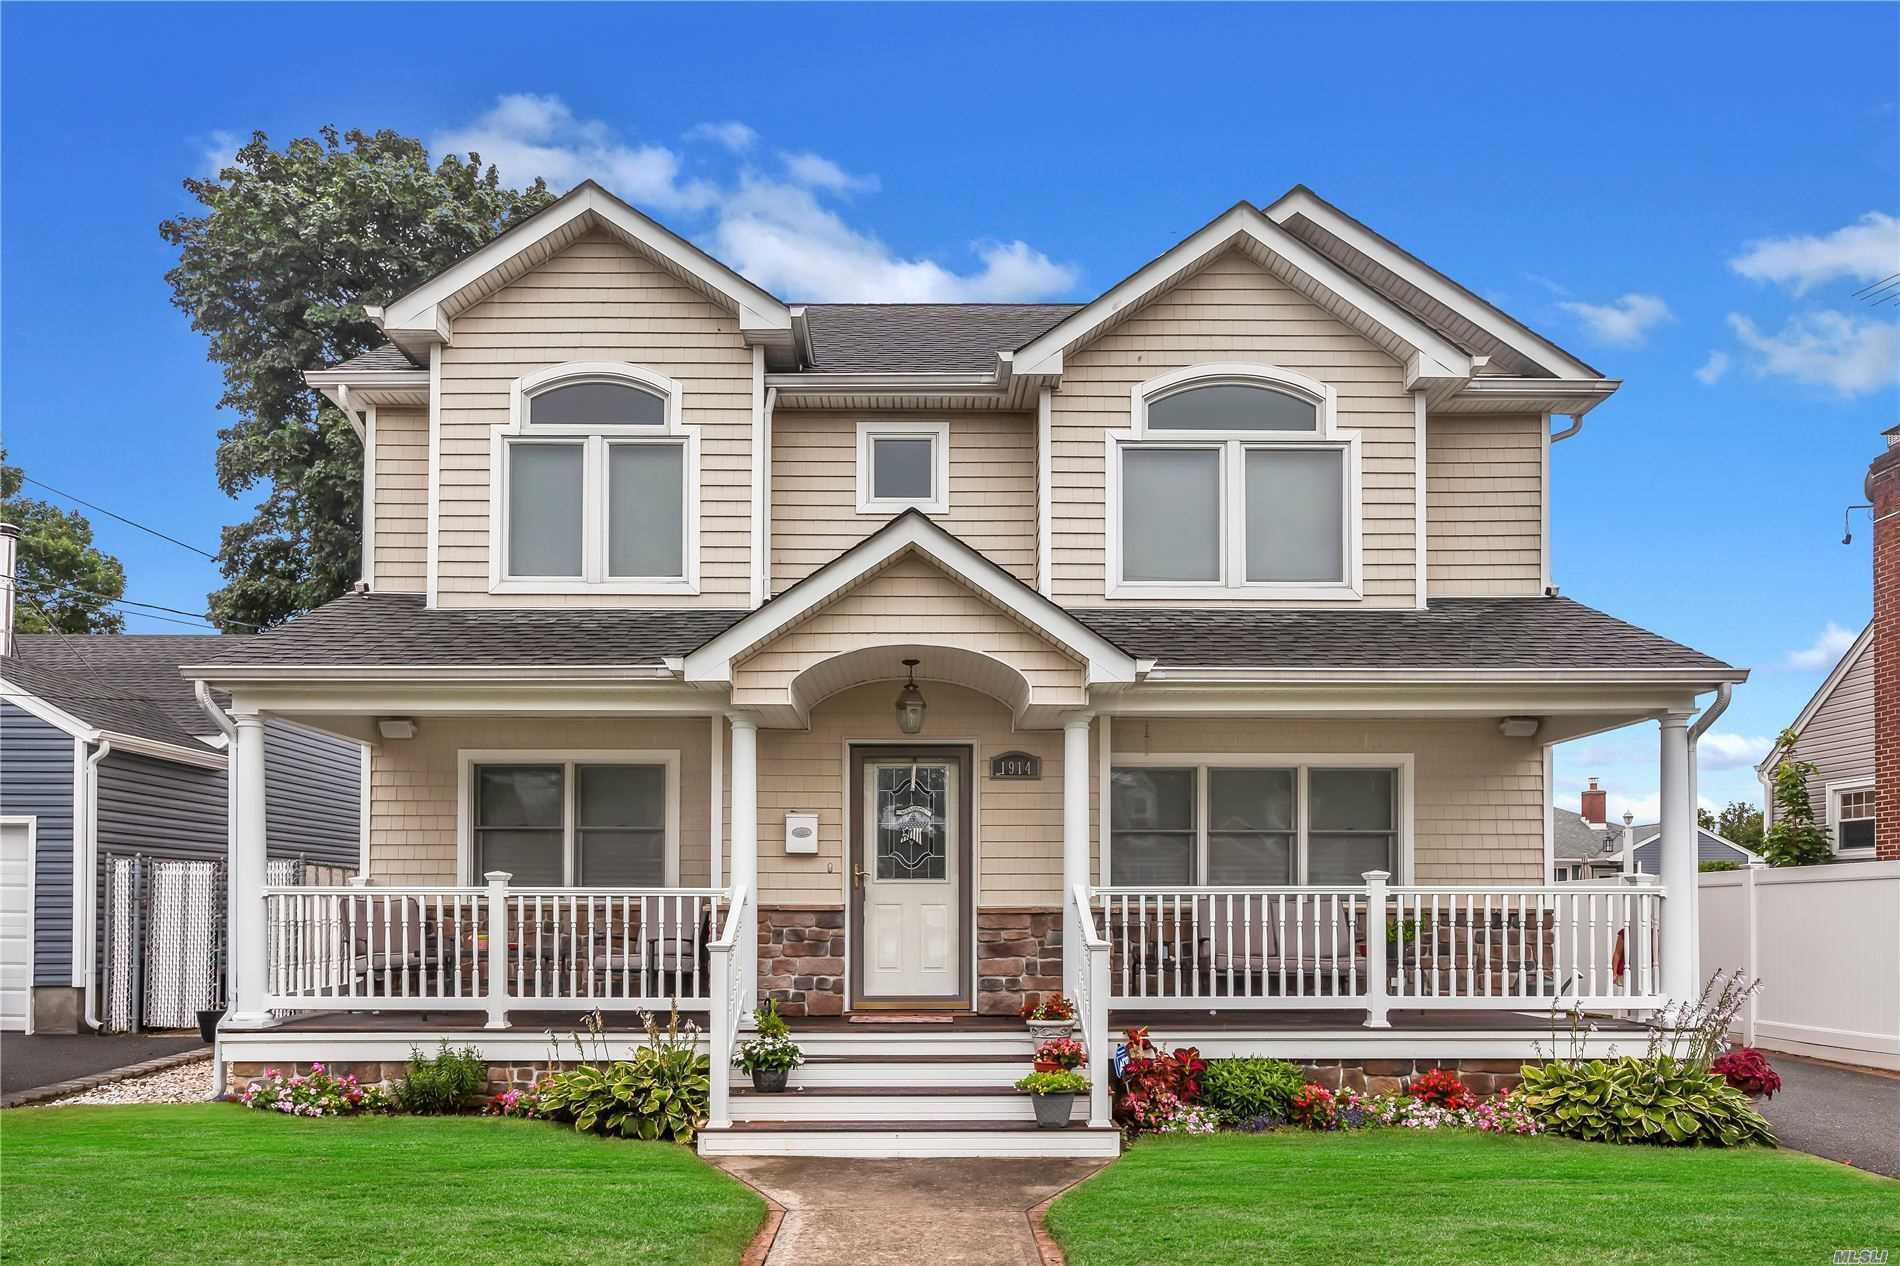 1914 Russell St, Bellmore, NY 11710 - MLS#: 3239533